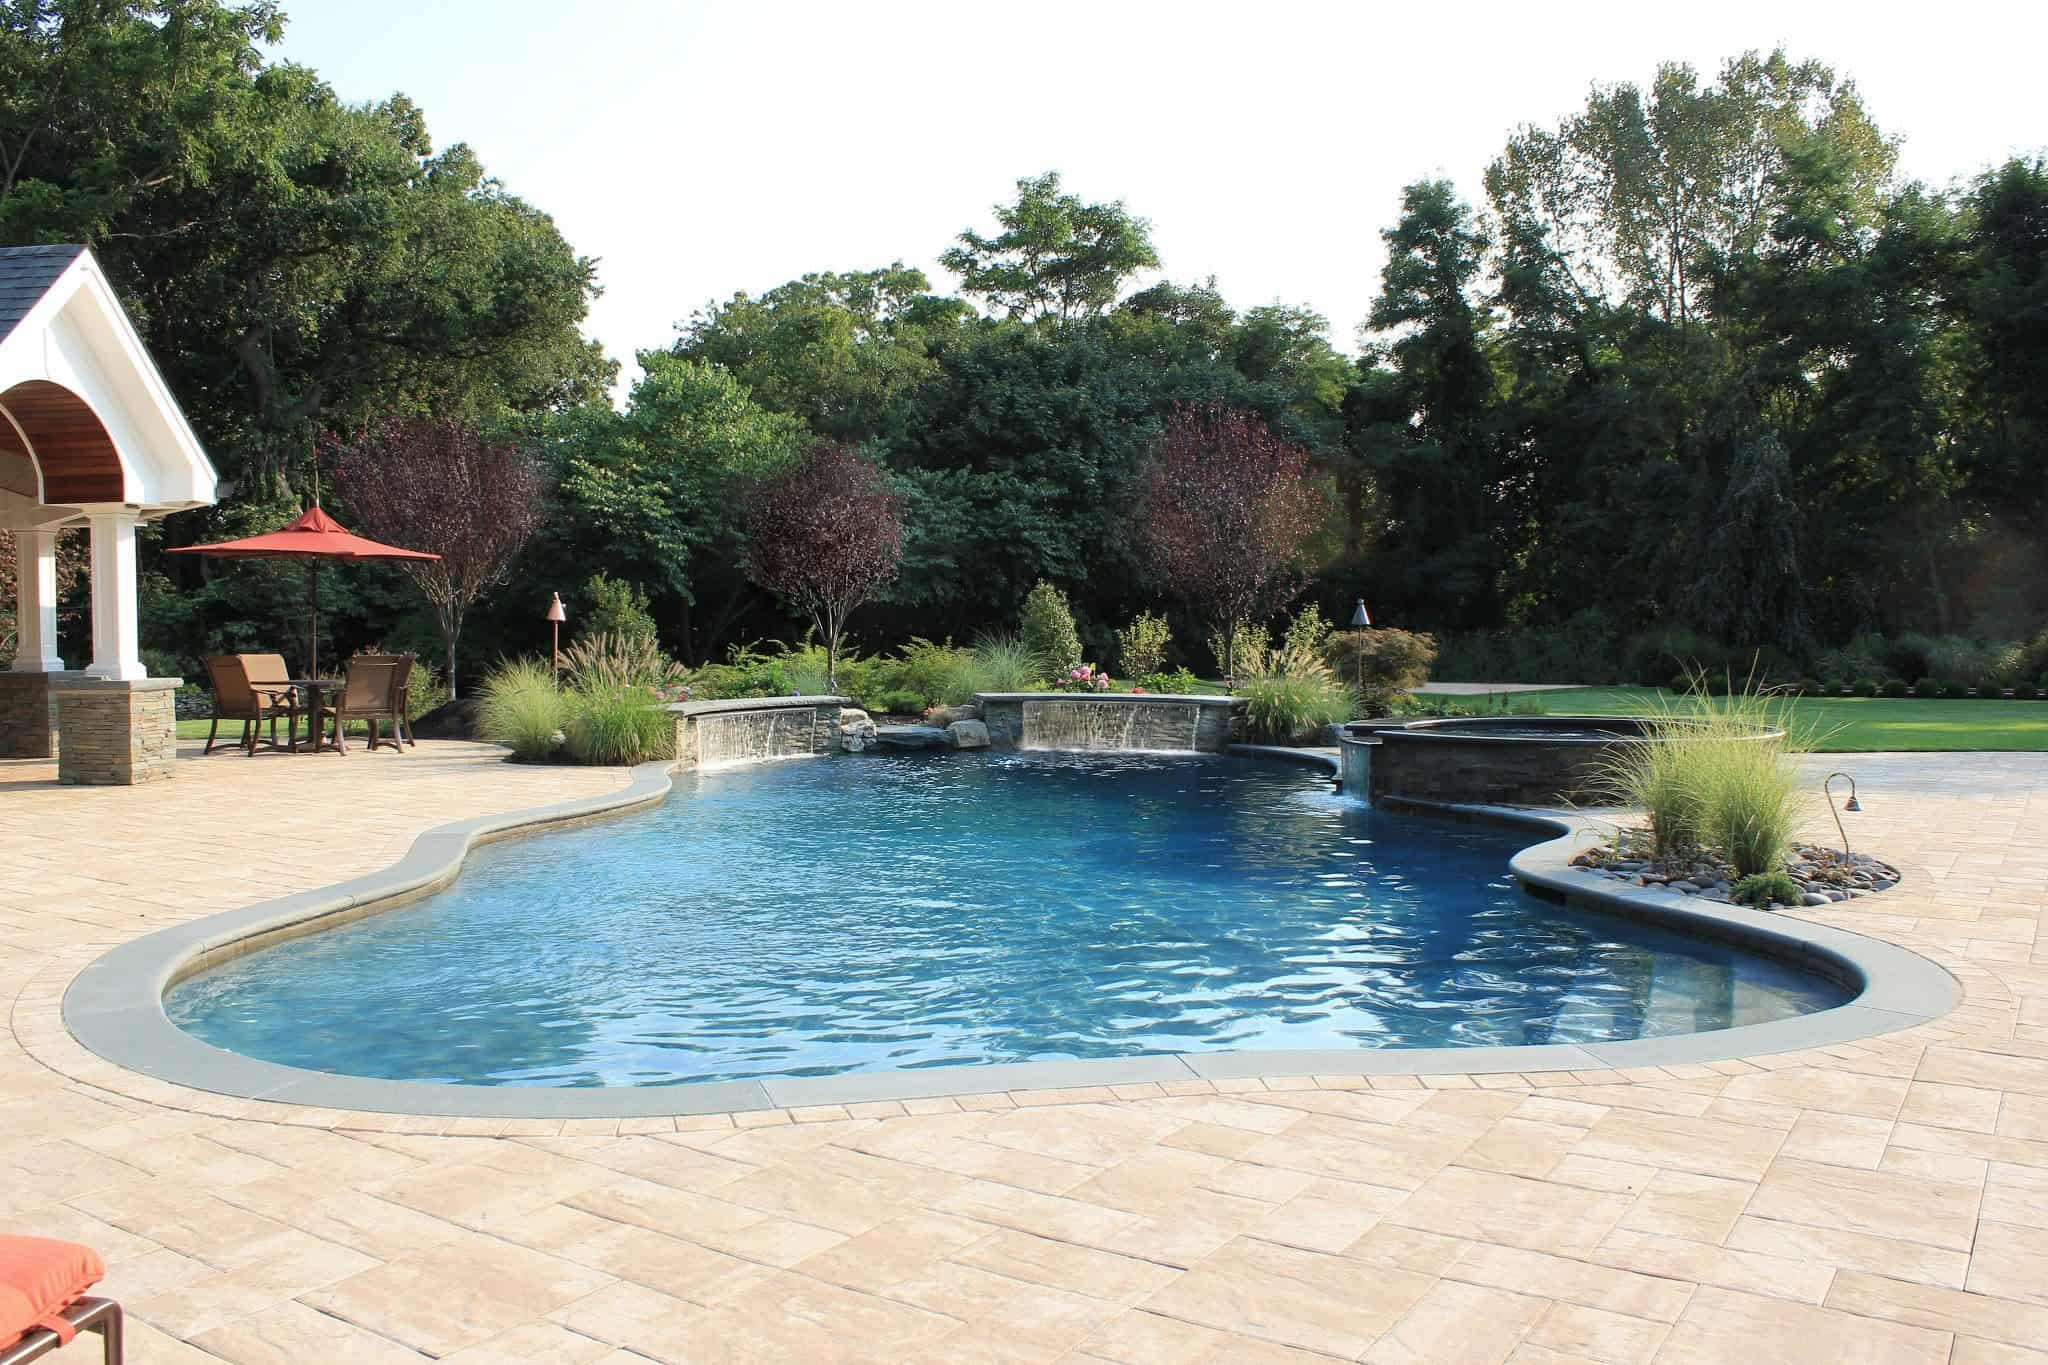 Twin 6' Sheer Descent Waterfalls veneered with stacked Bluestone and Rock Faced Bluestone Cap - Old Westbury, Long Island NY